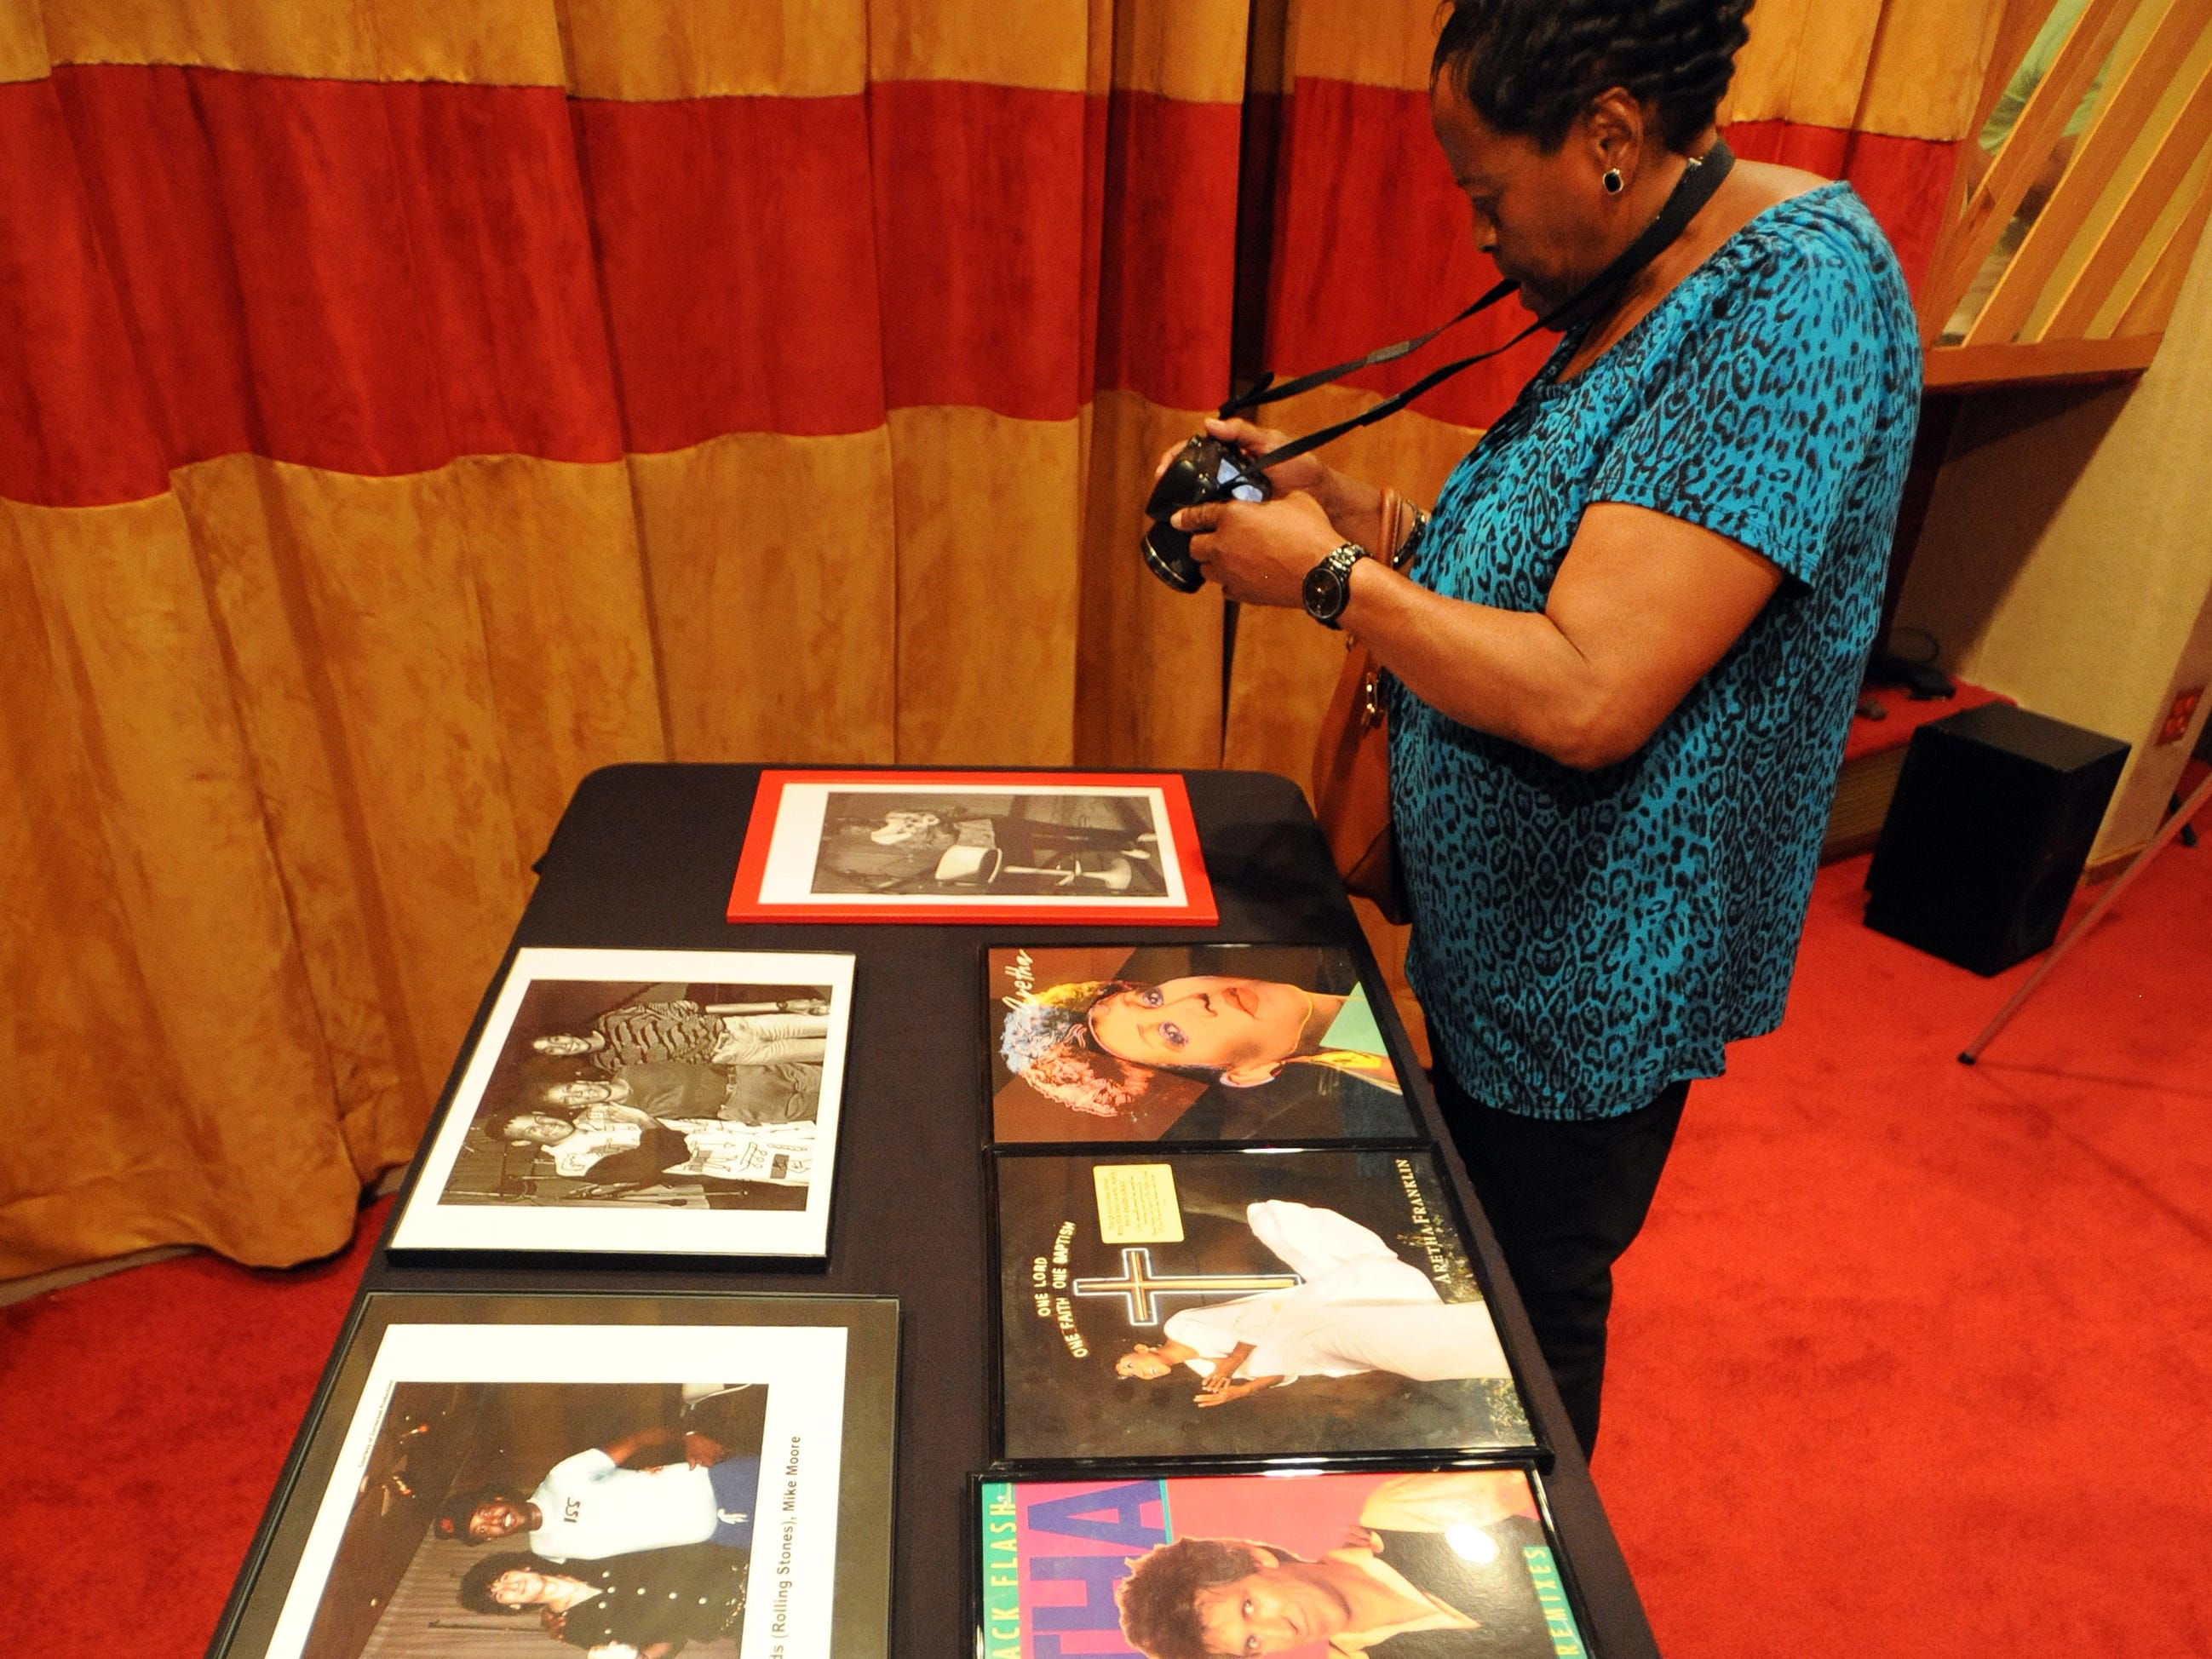 Visitors take pictures of framed photos of Aretha Franklin inside the Live Room of Studio B.